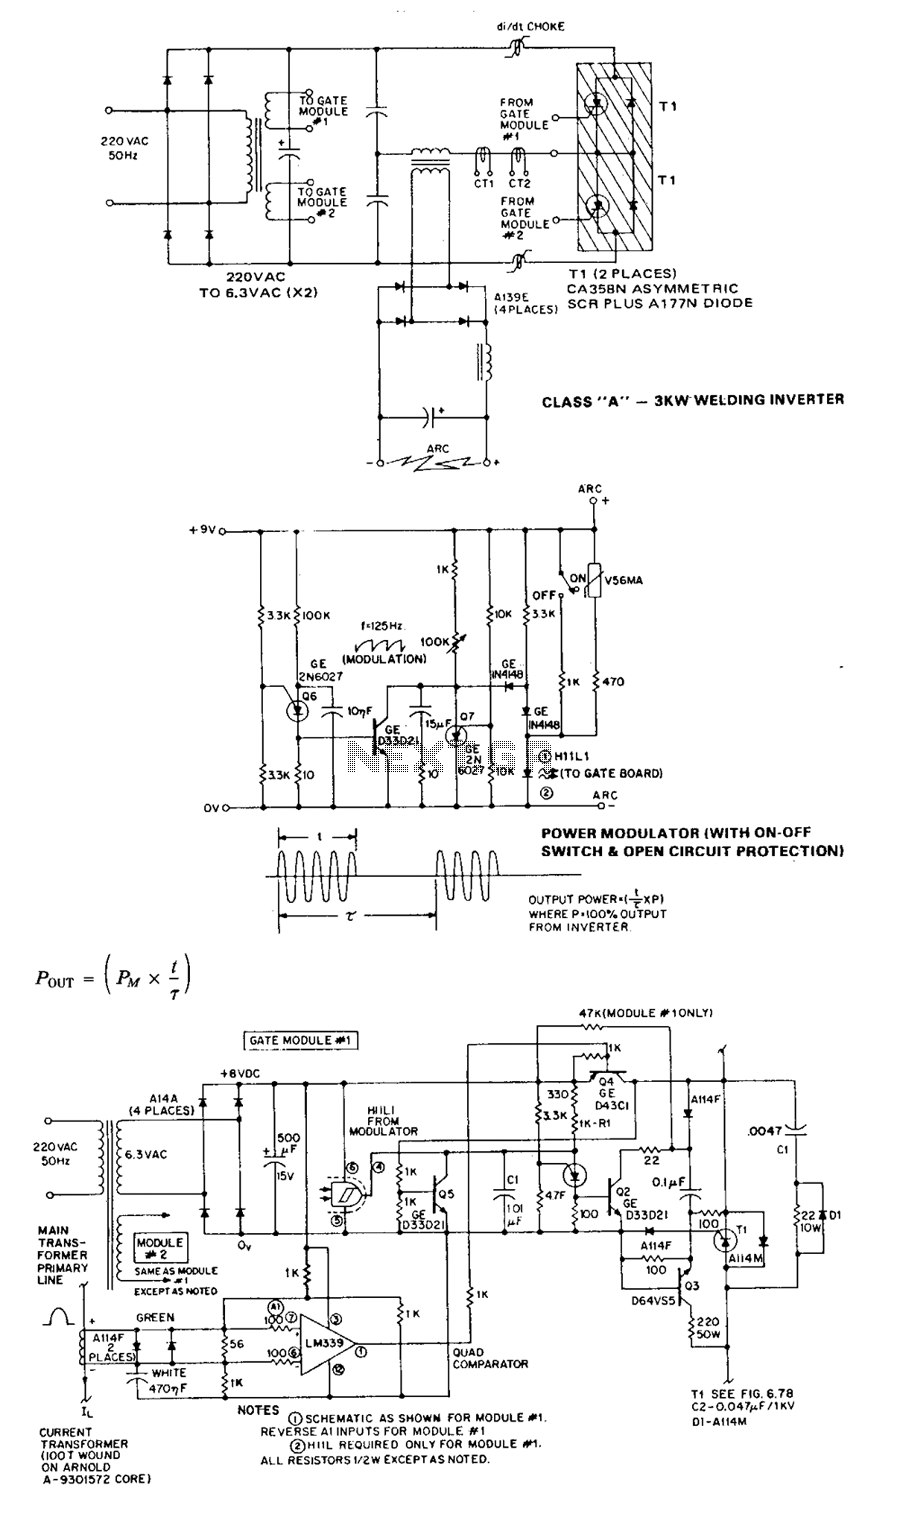 20Khz-arc-welding-inverter - schematic